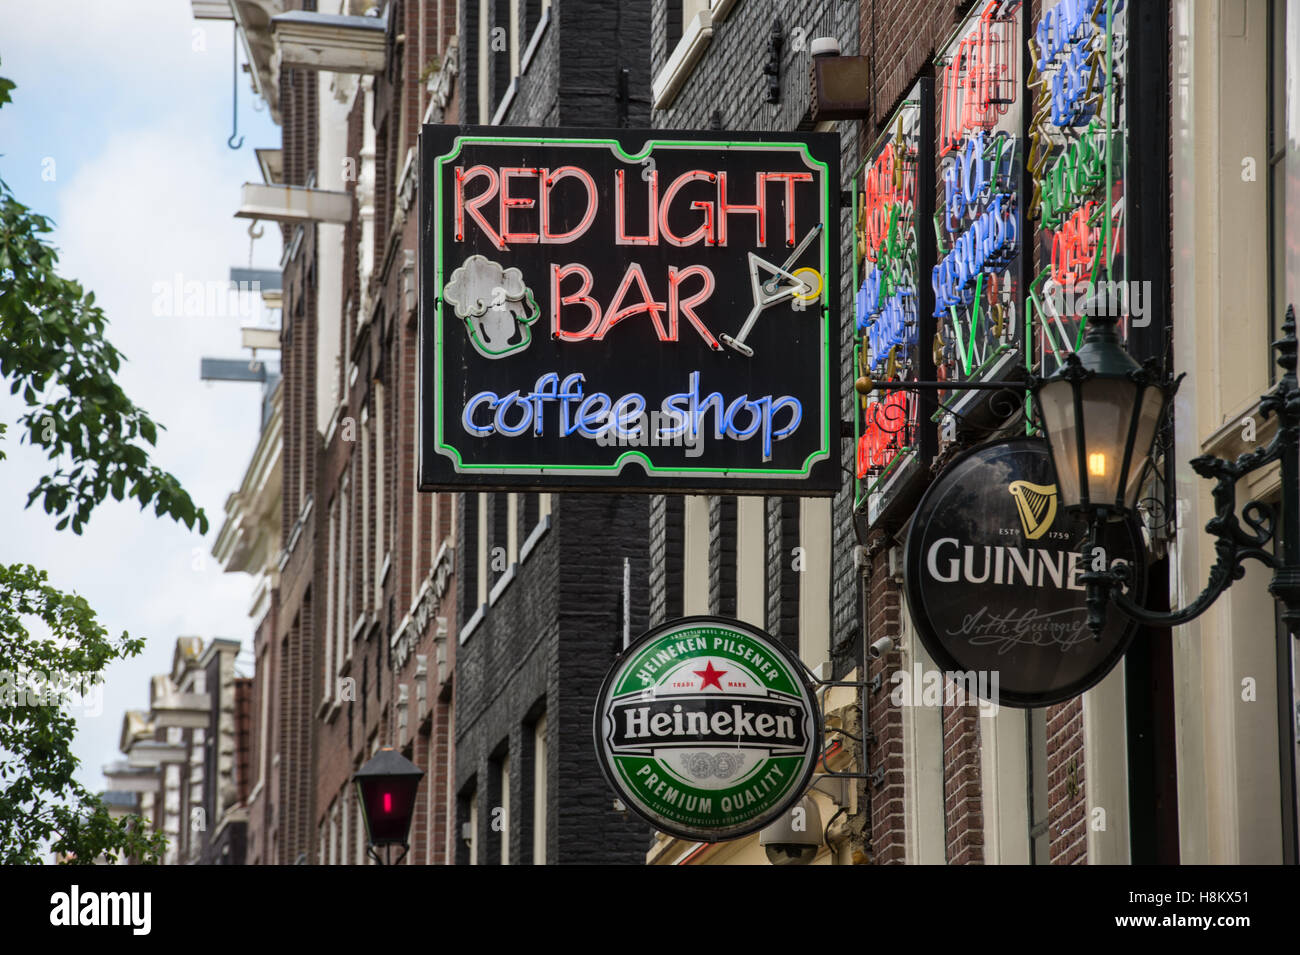 Amsterdam netherlands neon sign for the red light bar coffee shop amsterdam netherlands neon sign for the red light bar coffee shop located in the red light district aloadofball Image collections